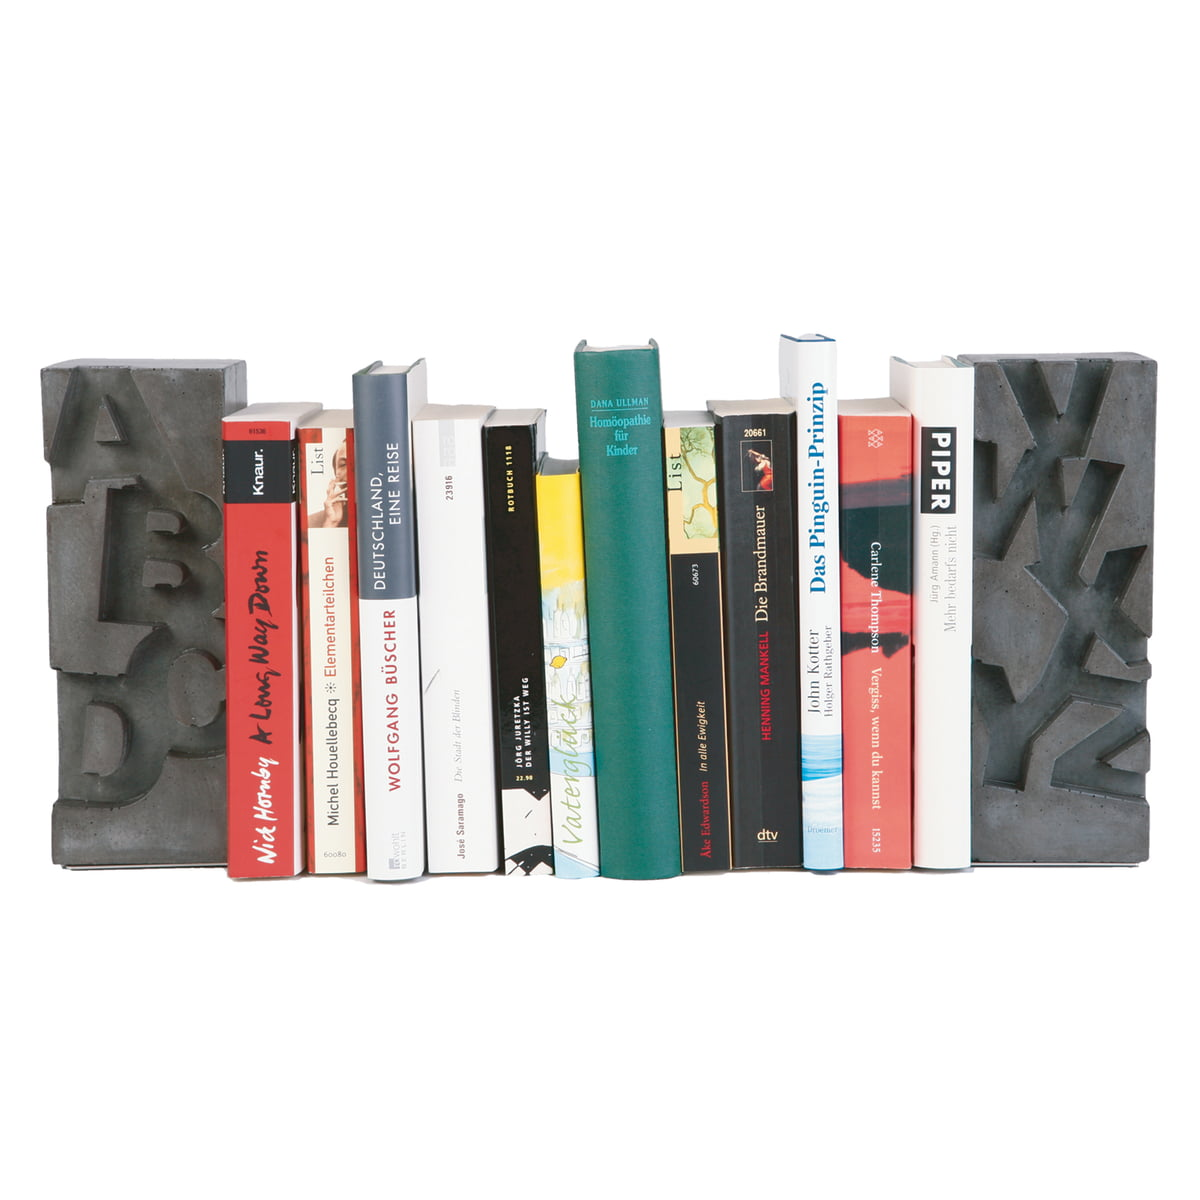 Korn Produkte bookend a z korn products shop